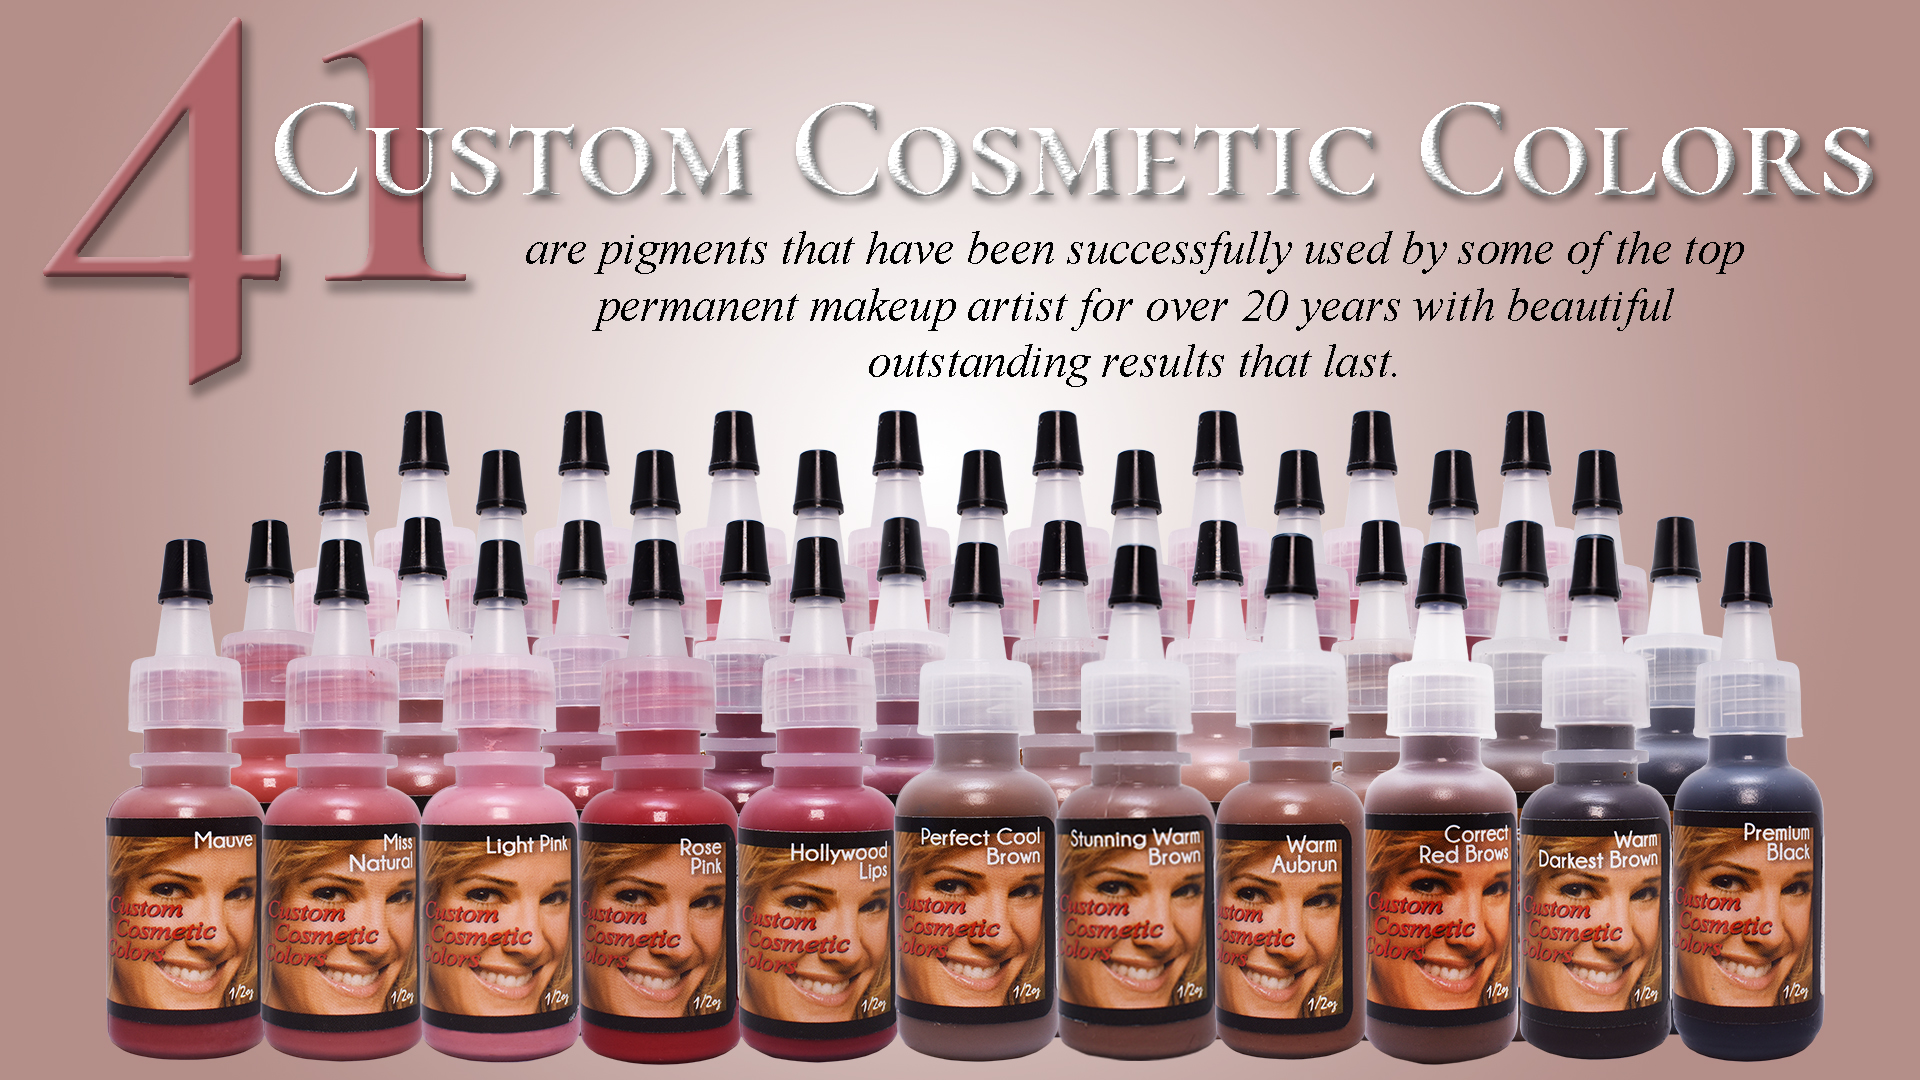 Custom Cosmetic Colors - Permanent Makeup Pigments